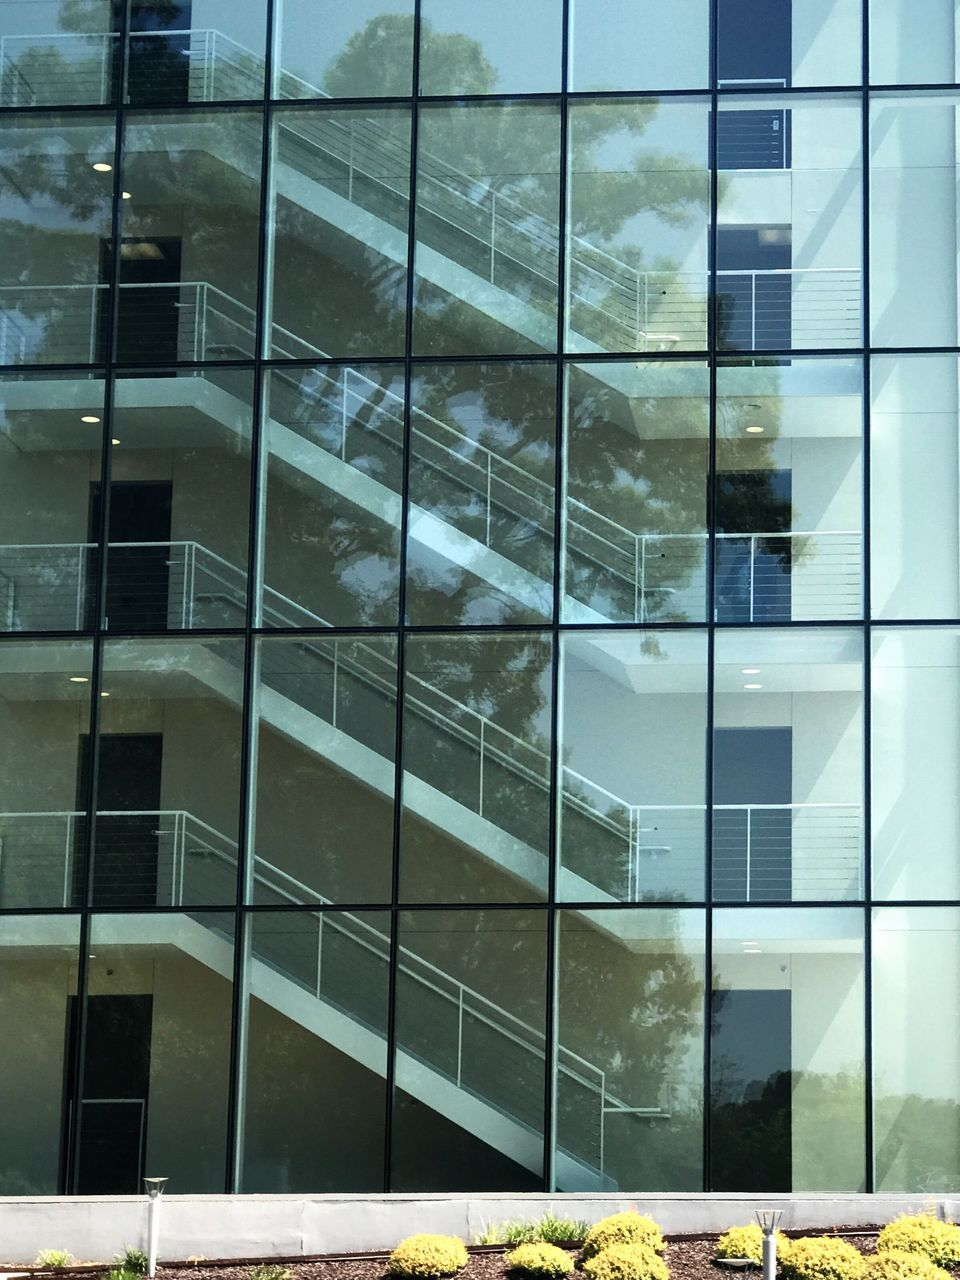 architecture, building exterior, window, built structure, building, reflection, modern, full frame, no people, outdoors, day, city